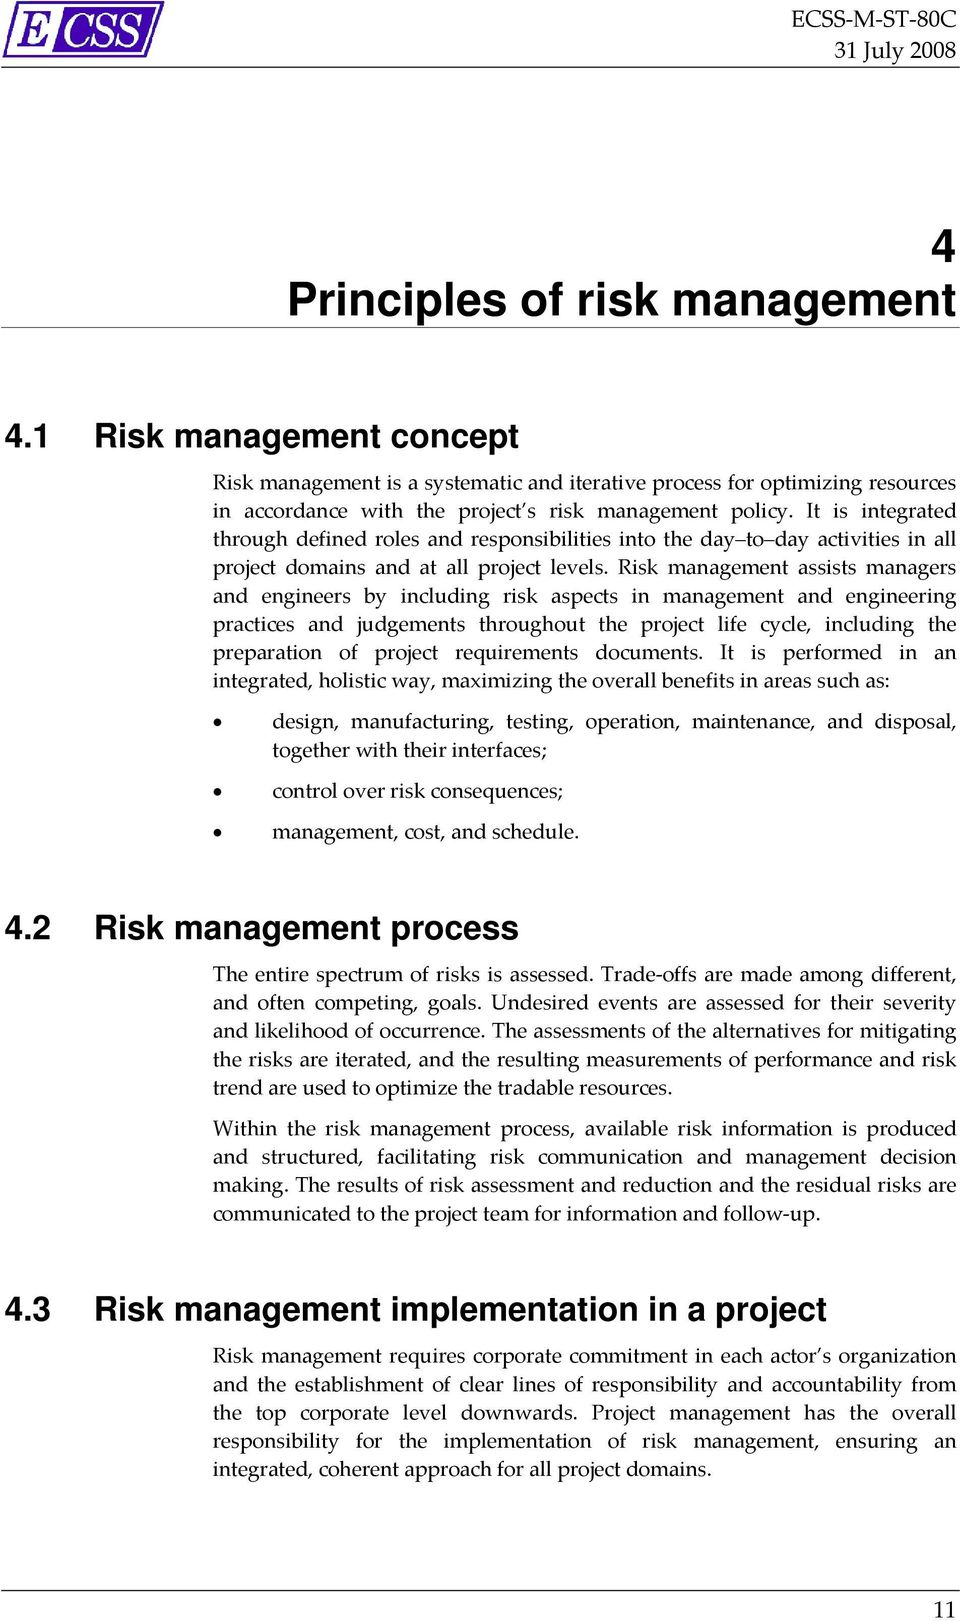 Risk management assists managers and engineers by including risk aspects in management and engineering practices and judgements throughout the project life cycle, including the preparation of project